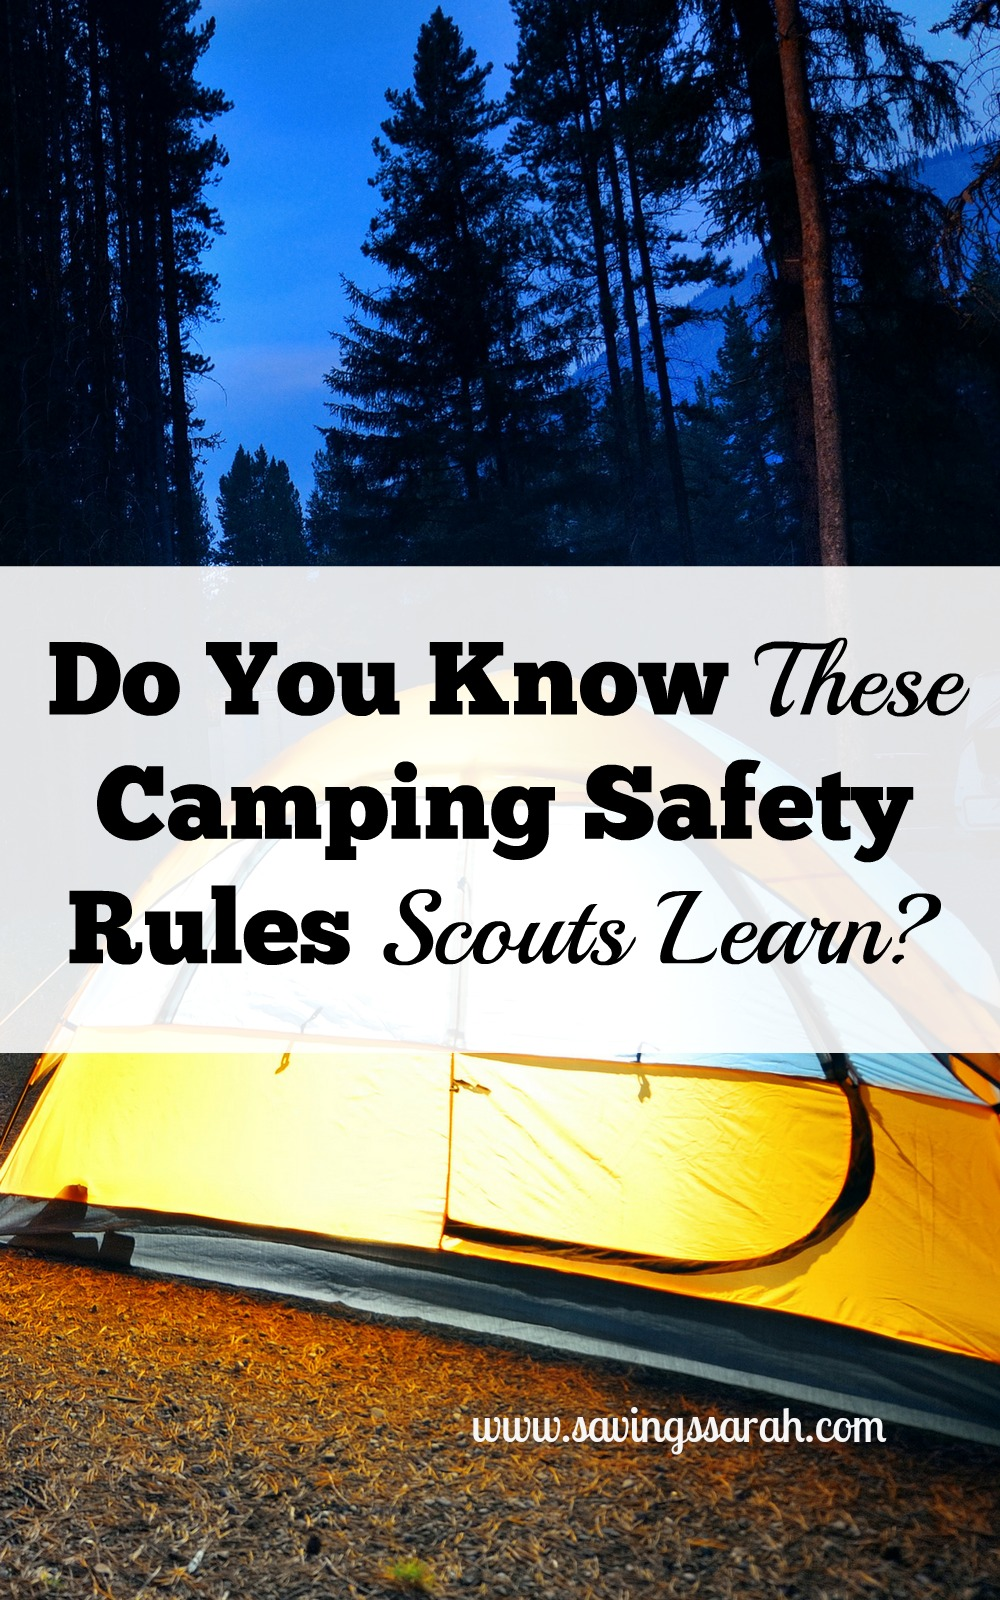 Do You Live In One Of These 15 Countries With The Most: Do You Know Important Camping Safety Rules Scouts Learn